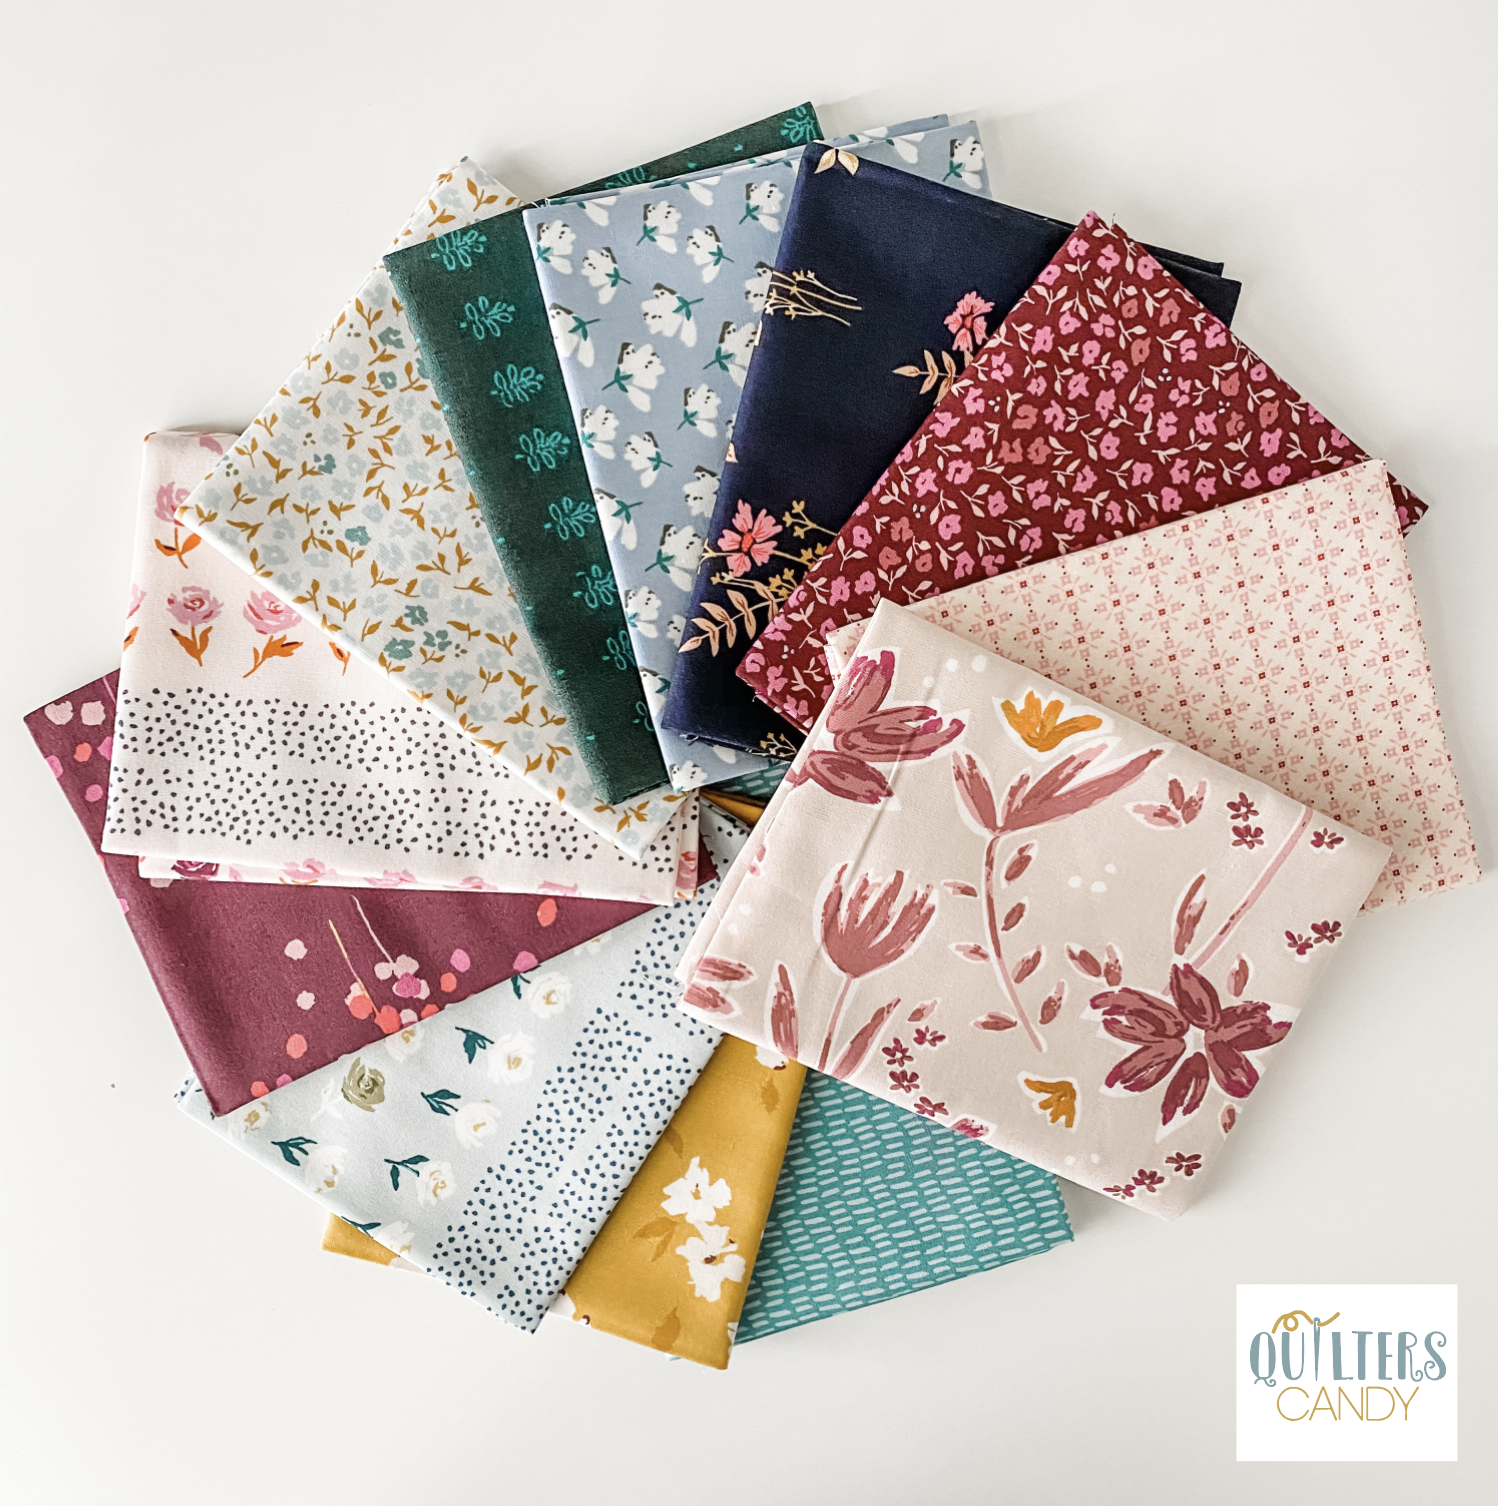 A Bundle of Mayfair Fabric with the Quilters Candy logo in the bottom right corner.